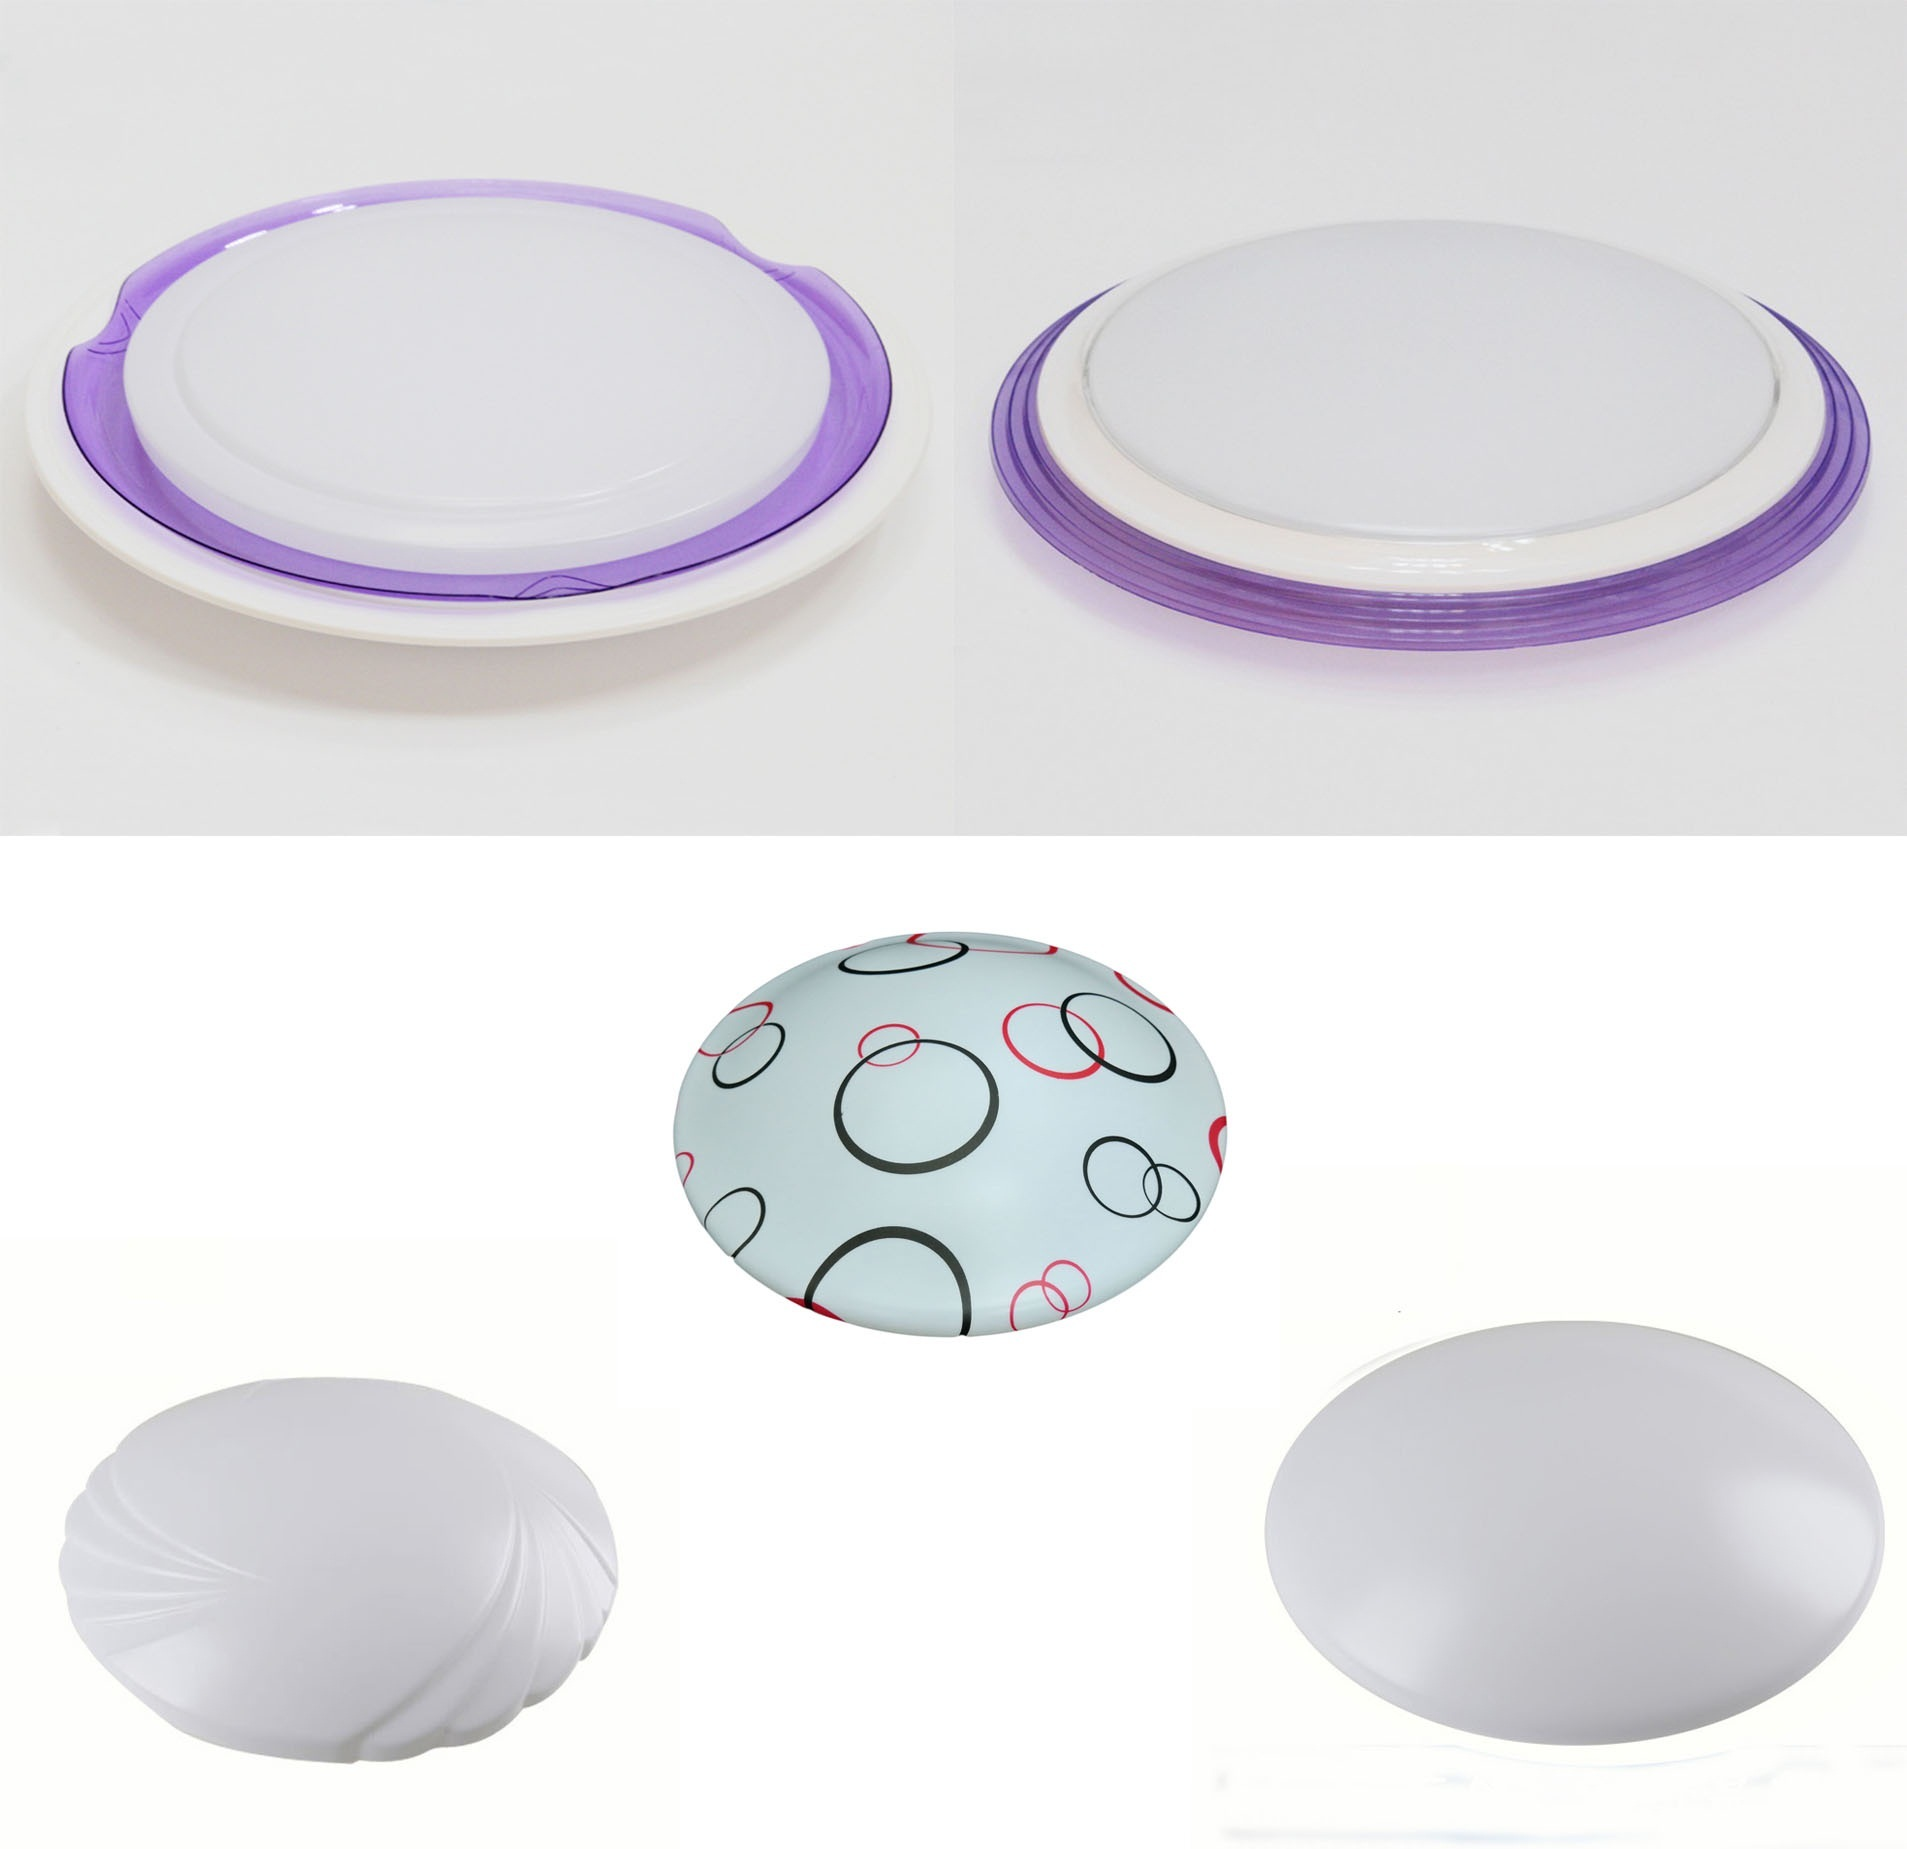 Ceiling Light Cover Only : Qoo led cover and base ceiling light